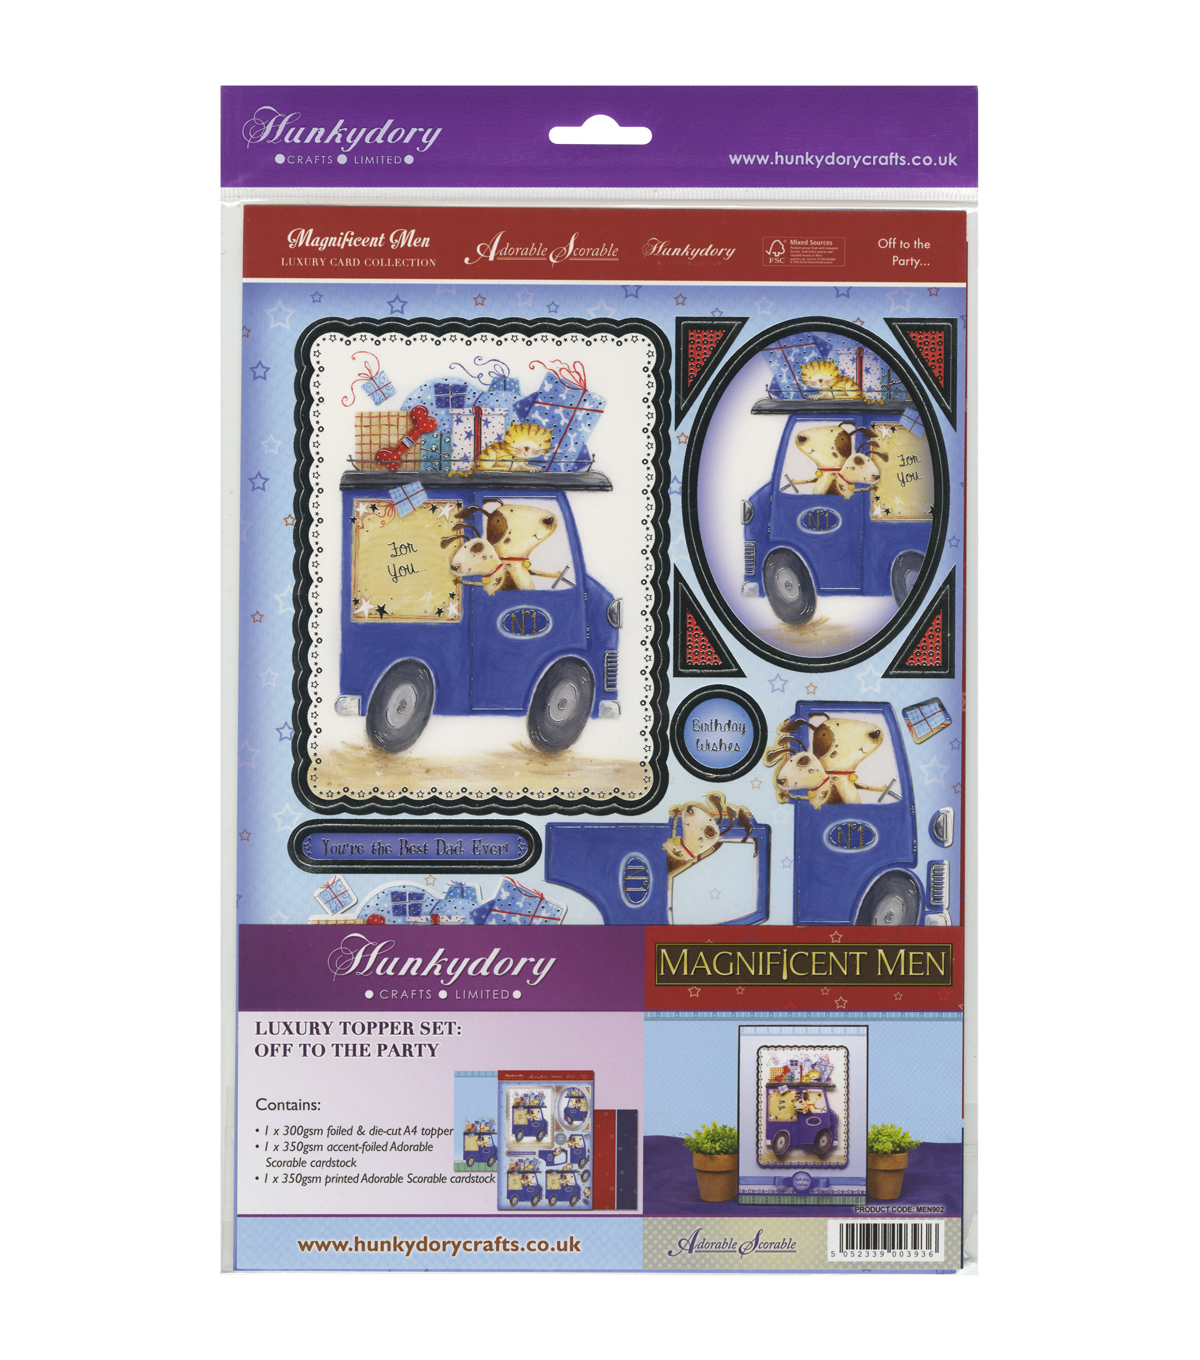 Hunkydory Crafts Magnificent Men Off To The Party Luxury Topper Set